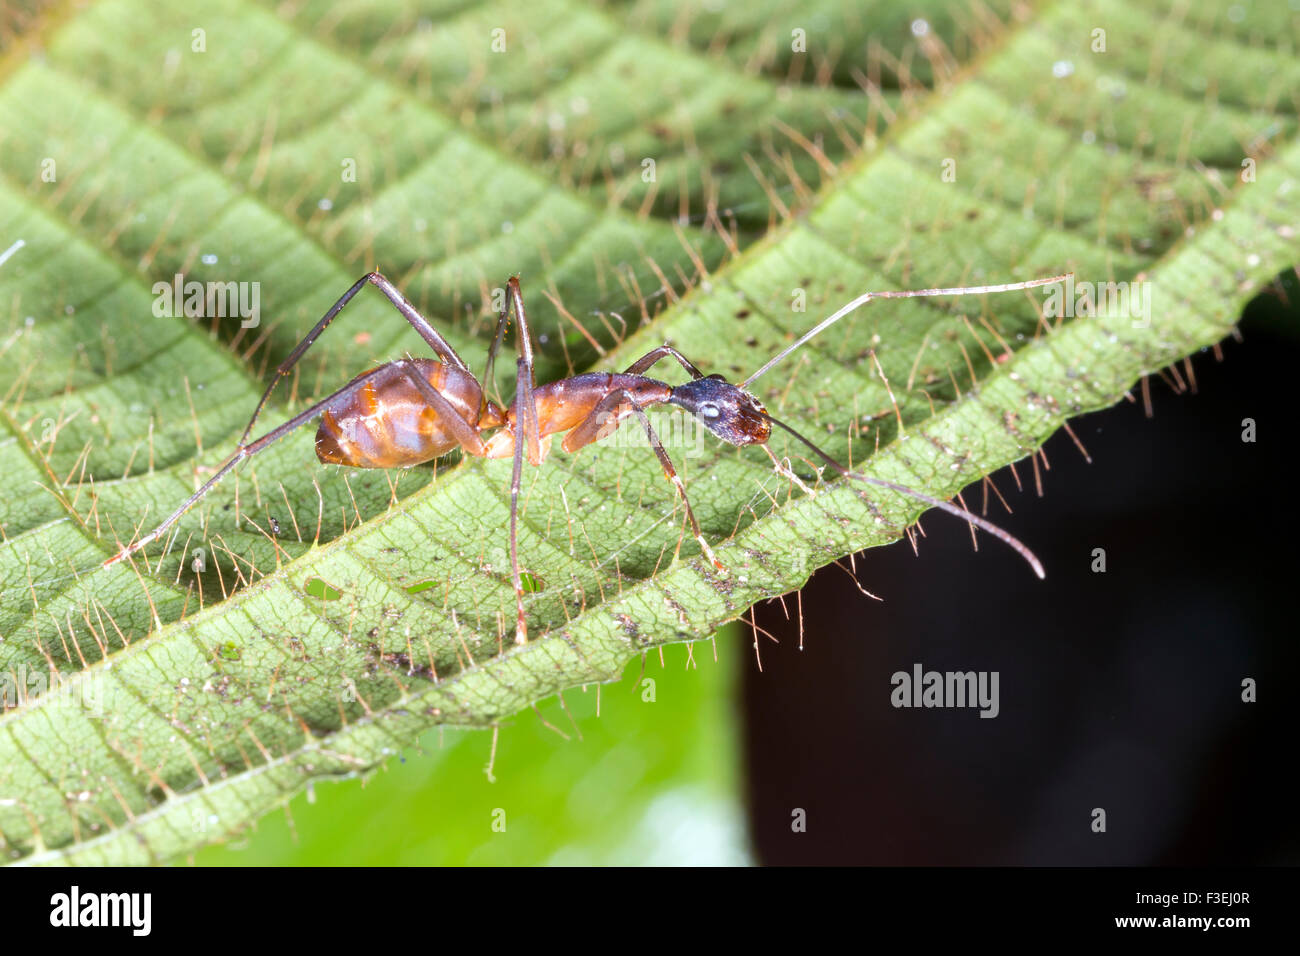 Large ant on a leaf in the rainforest, Ecuador Stock Photo